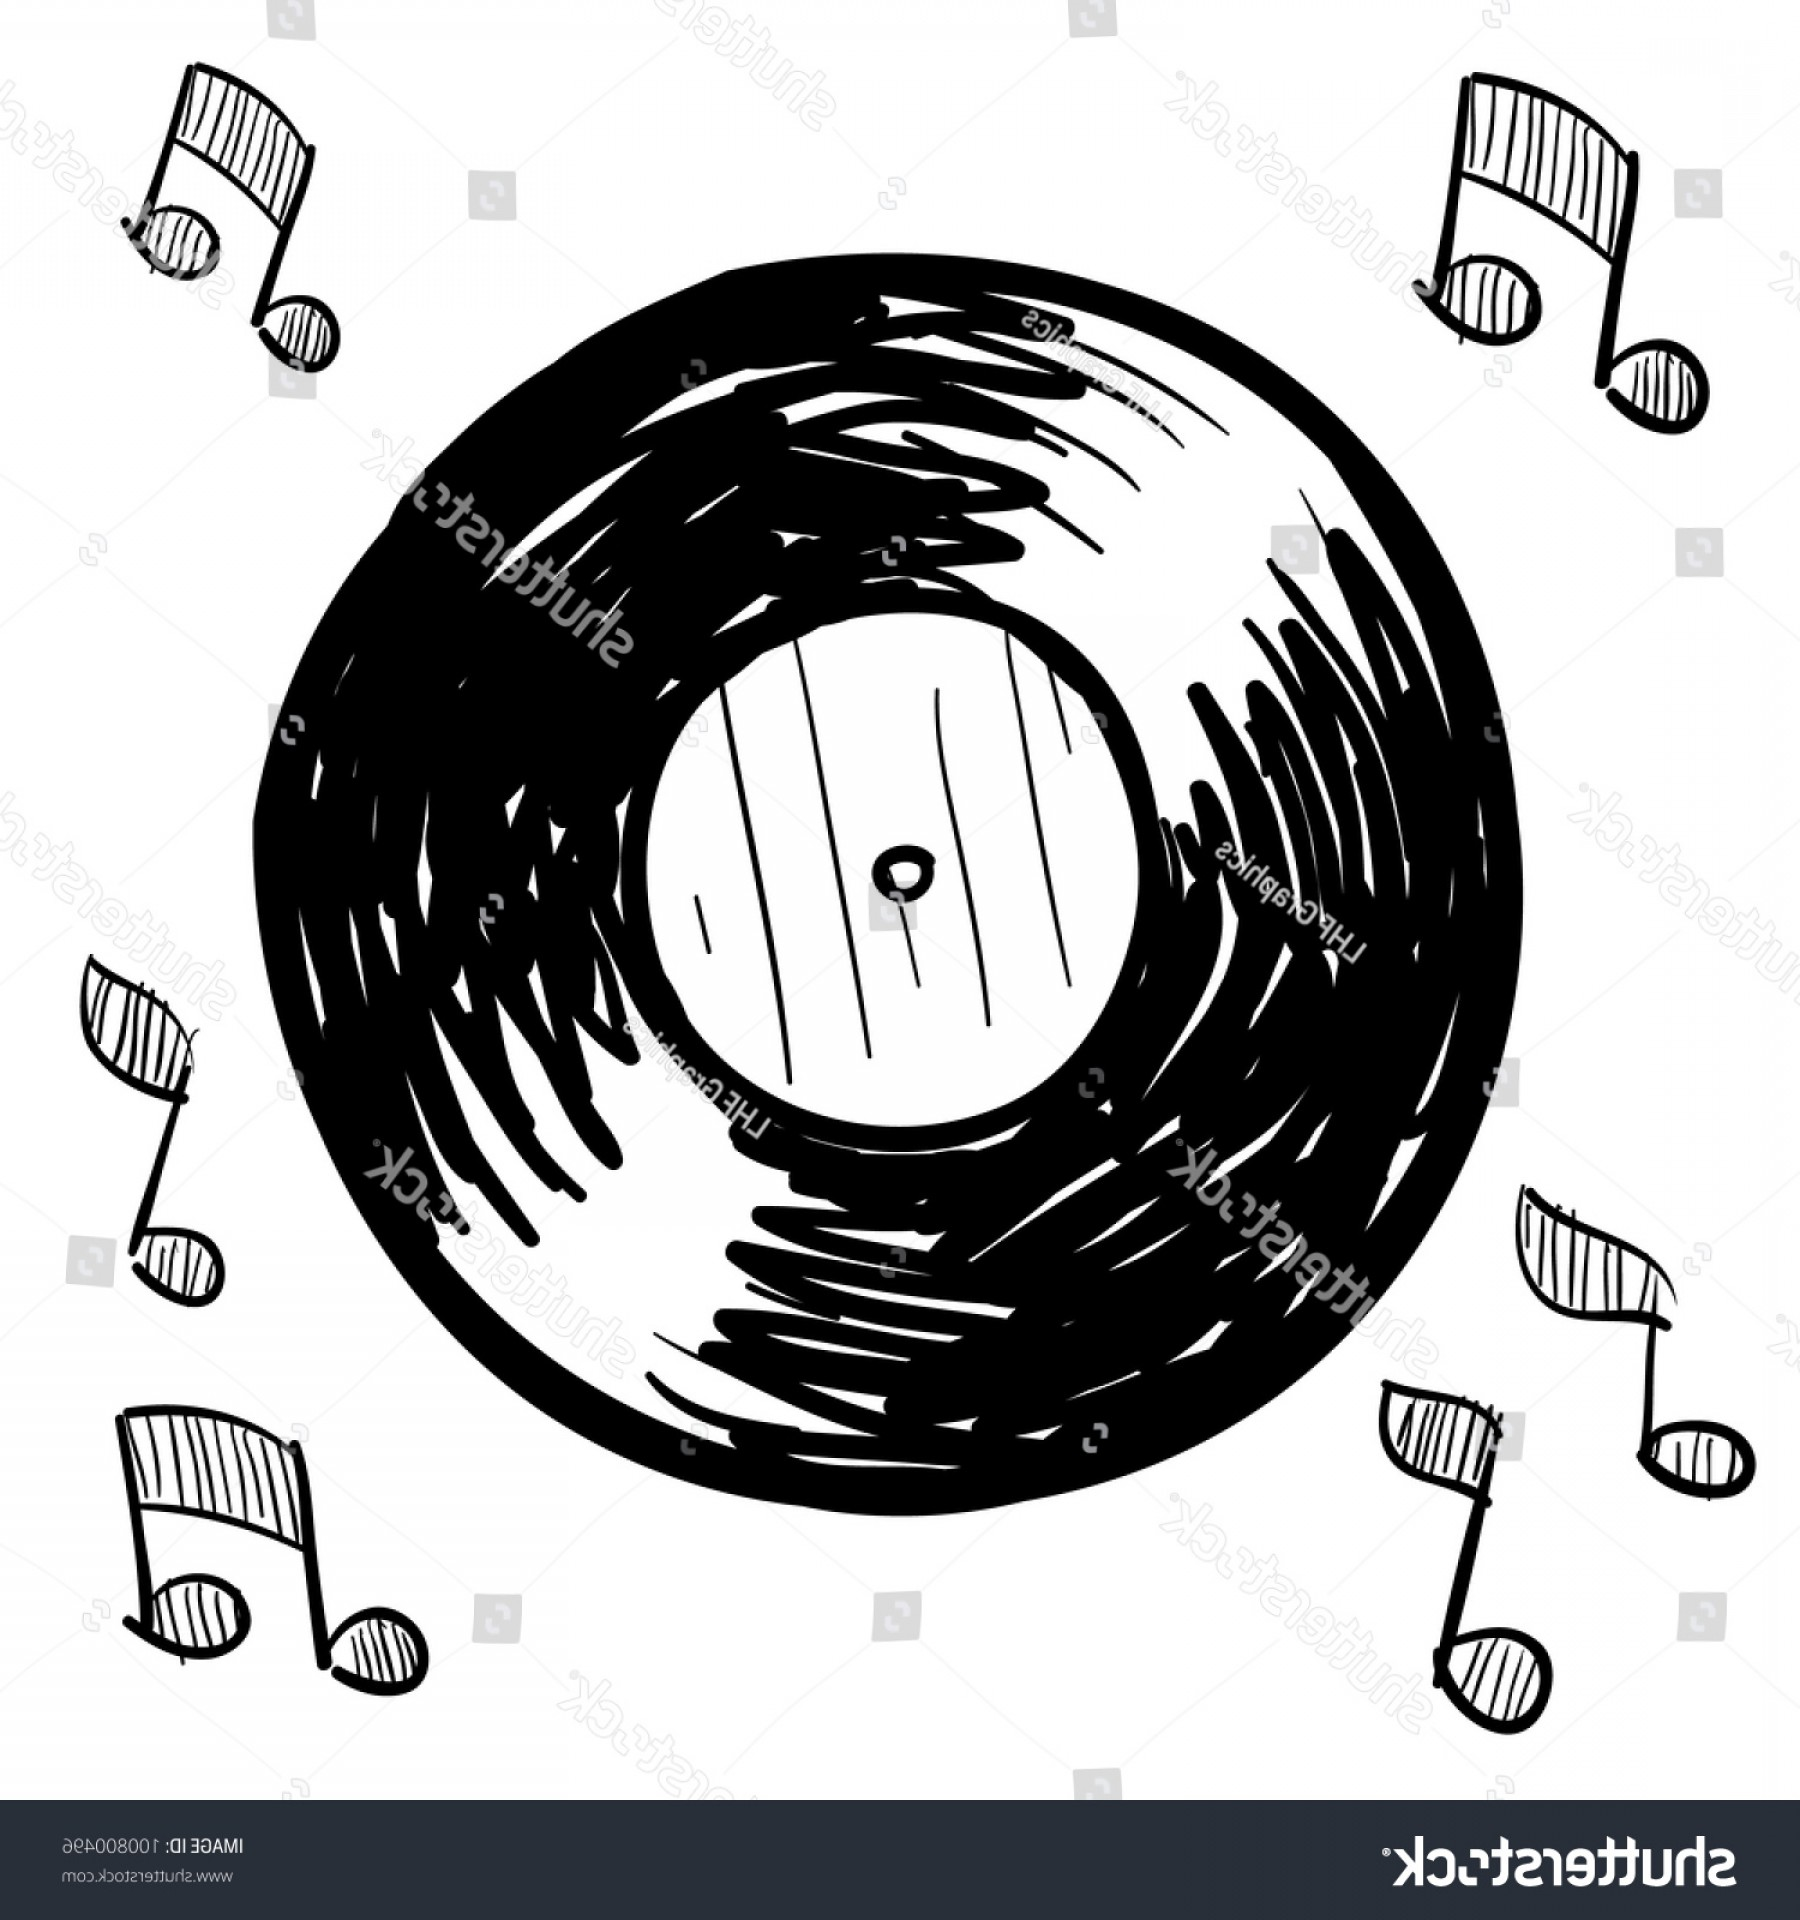 Vinyl Vector Tools: Doodle Style Vinyl Record Illustration Vector